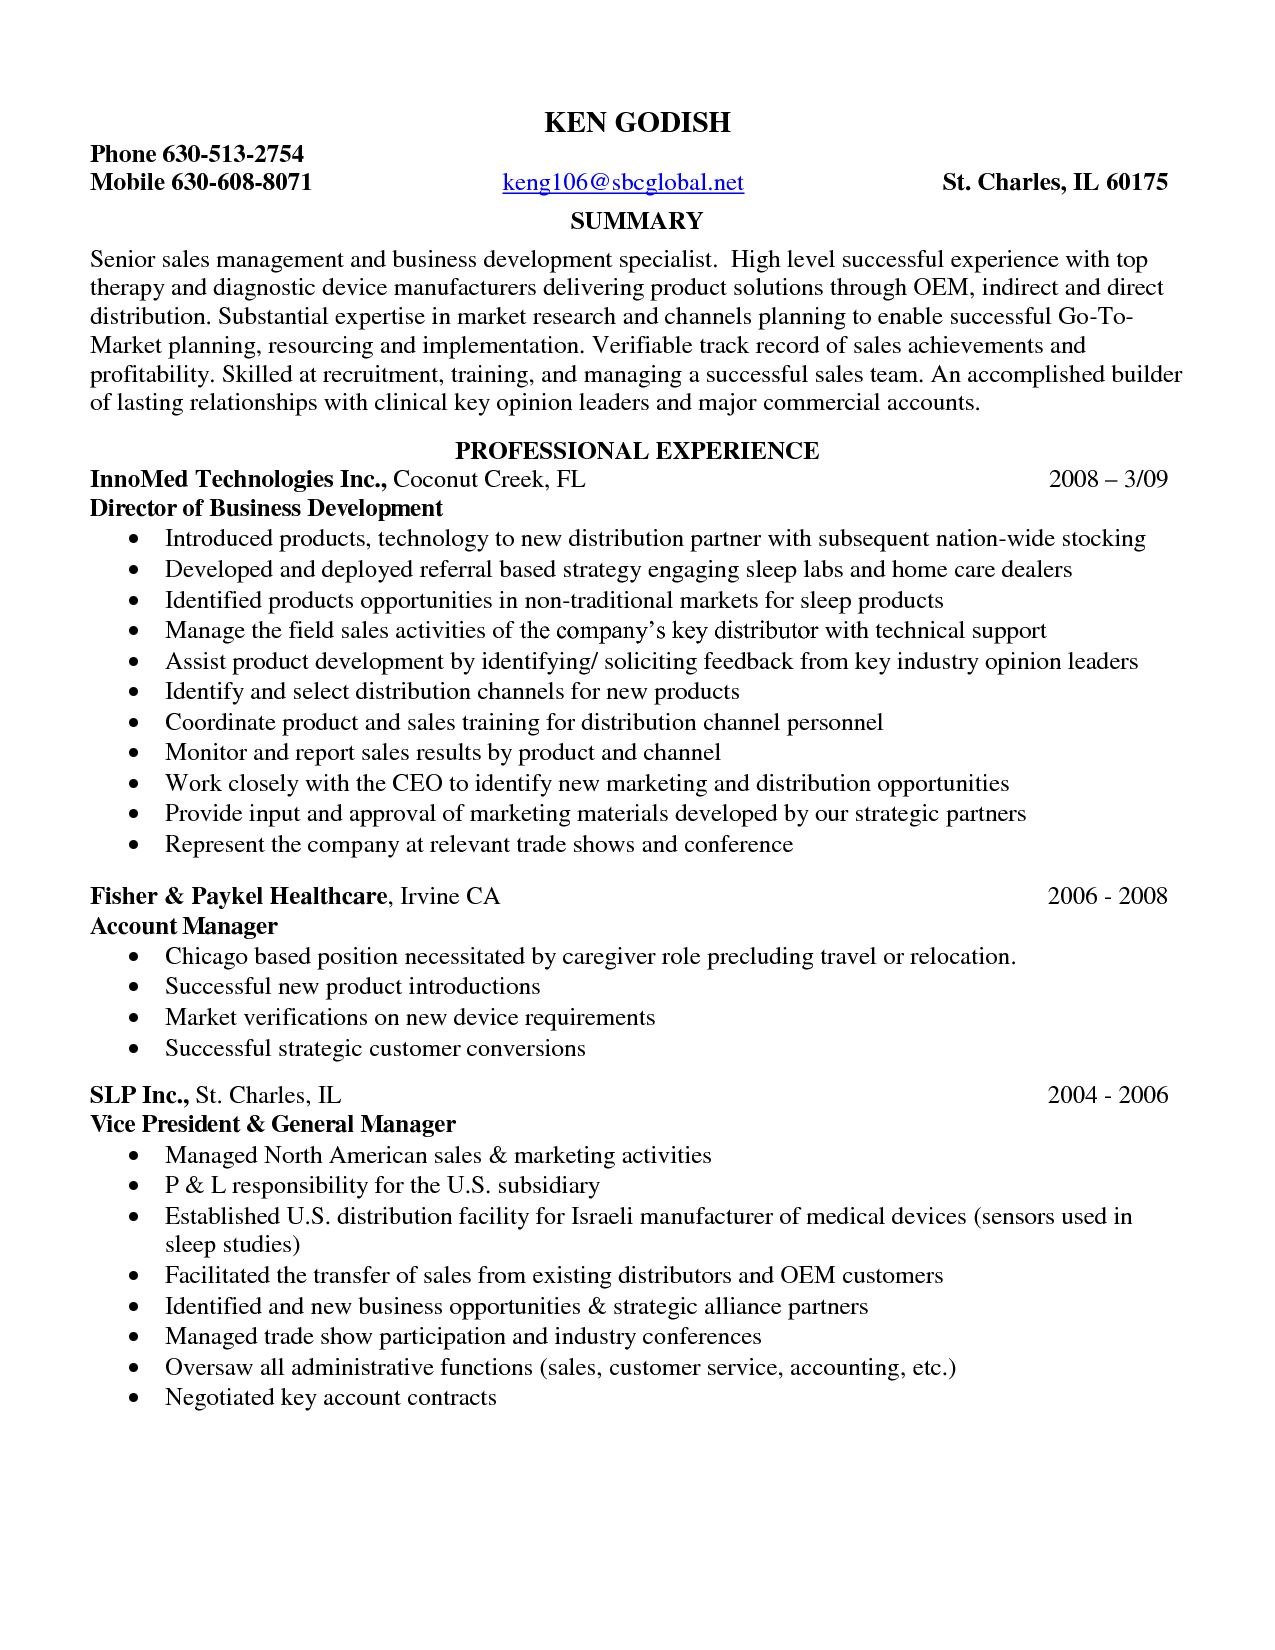 Sample Resume Entry Level Pharmaceutical Sales Sample Resume Entry – Resume Samples Entry Level